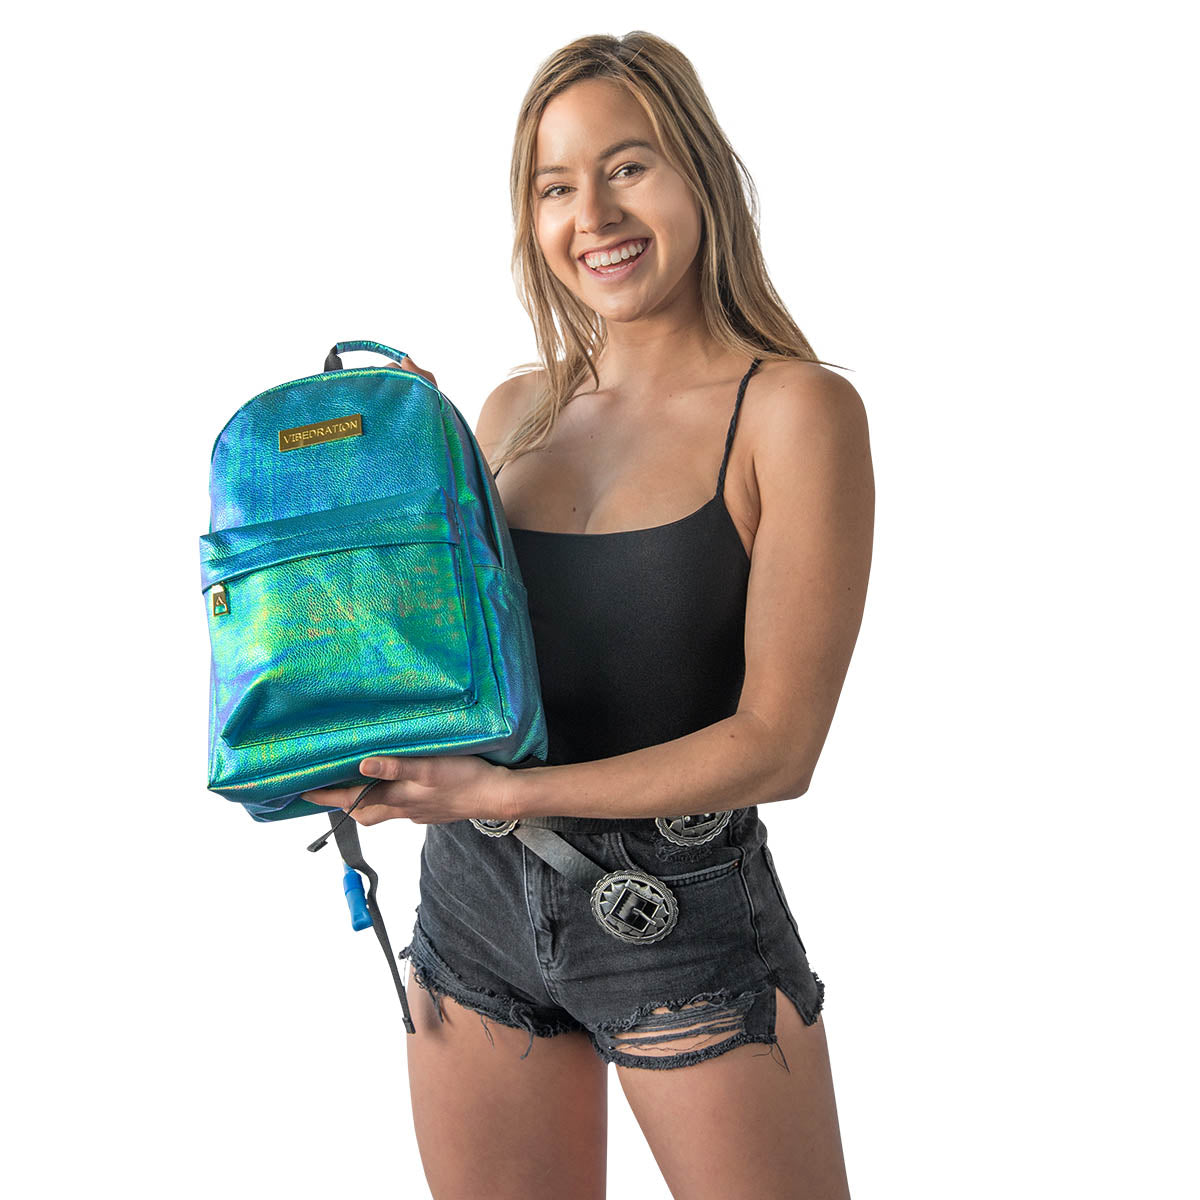 Vegan Leather hydration pack for Burning Man